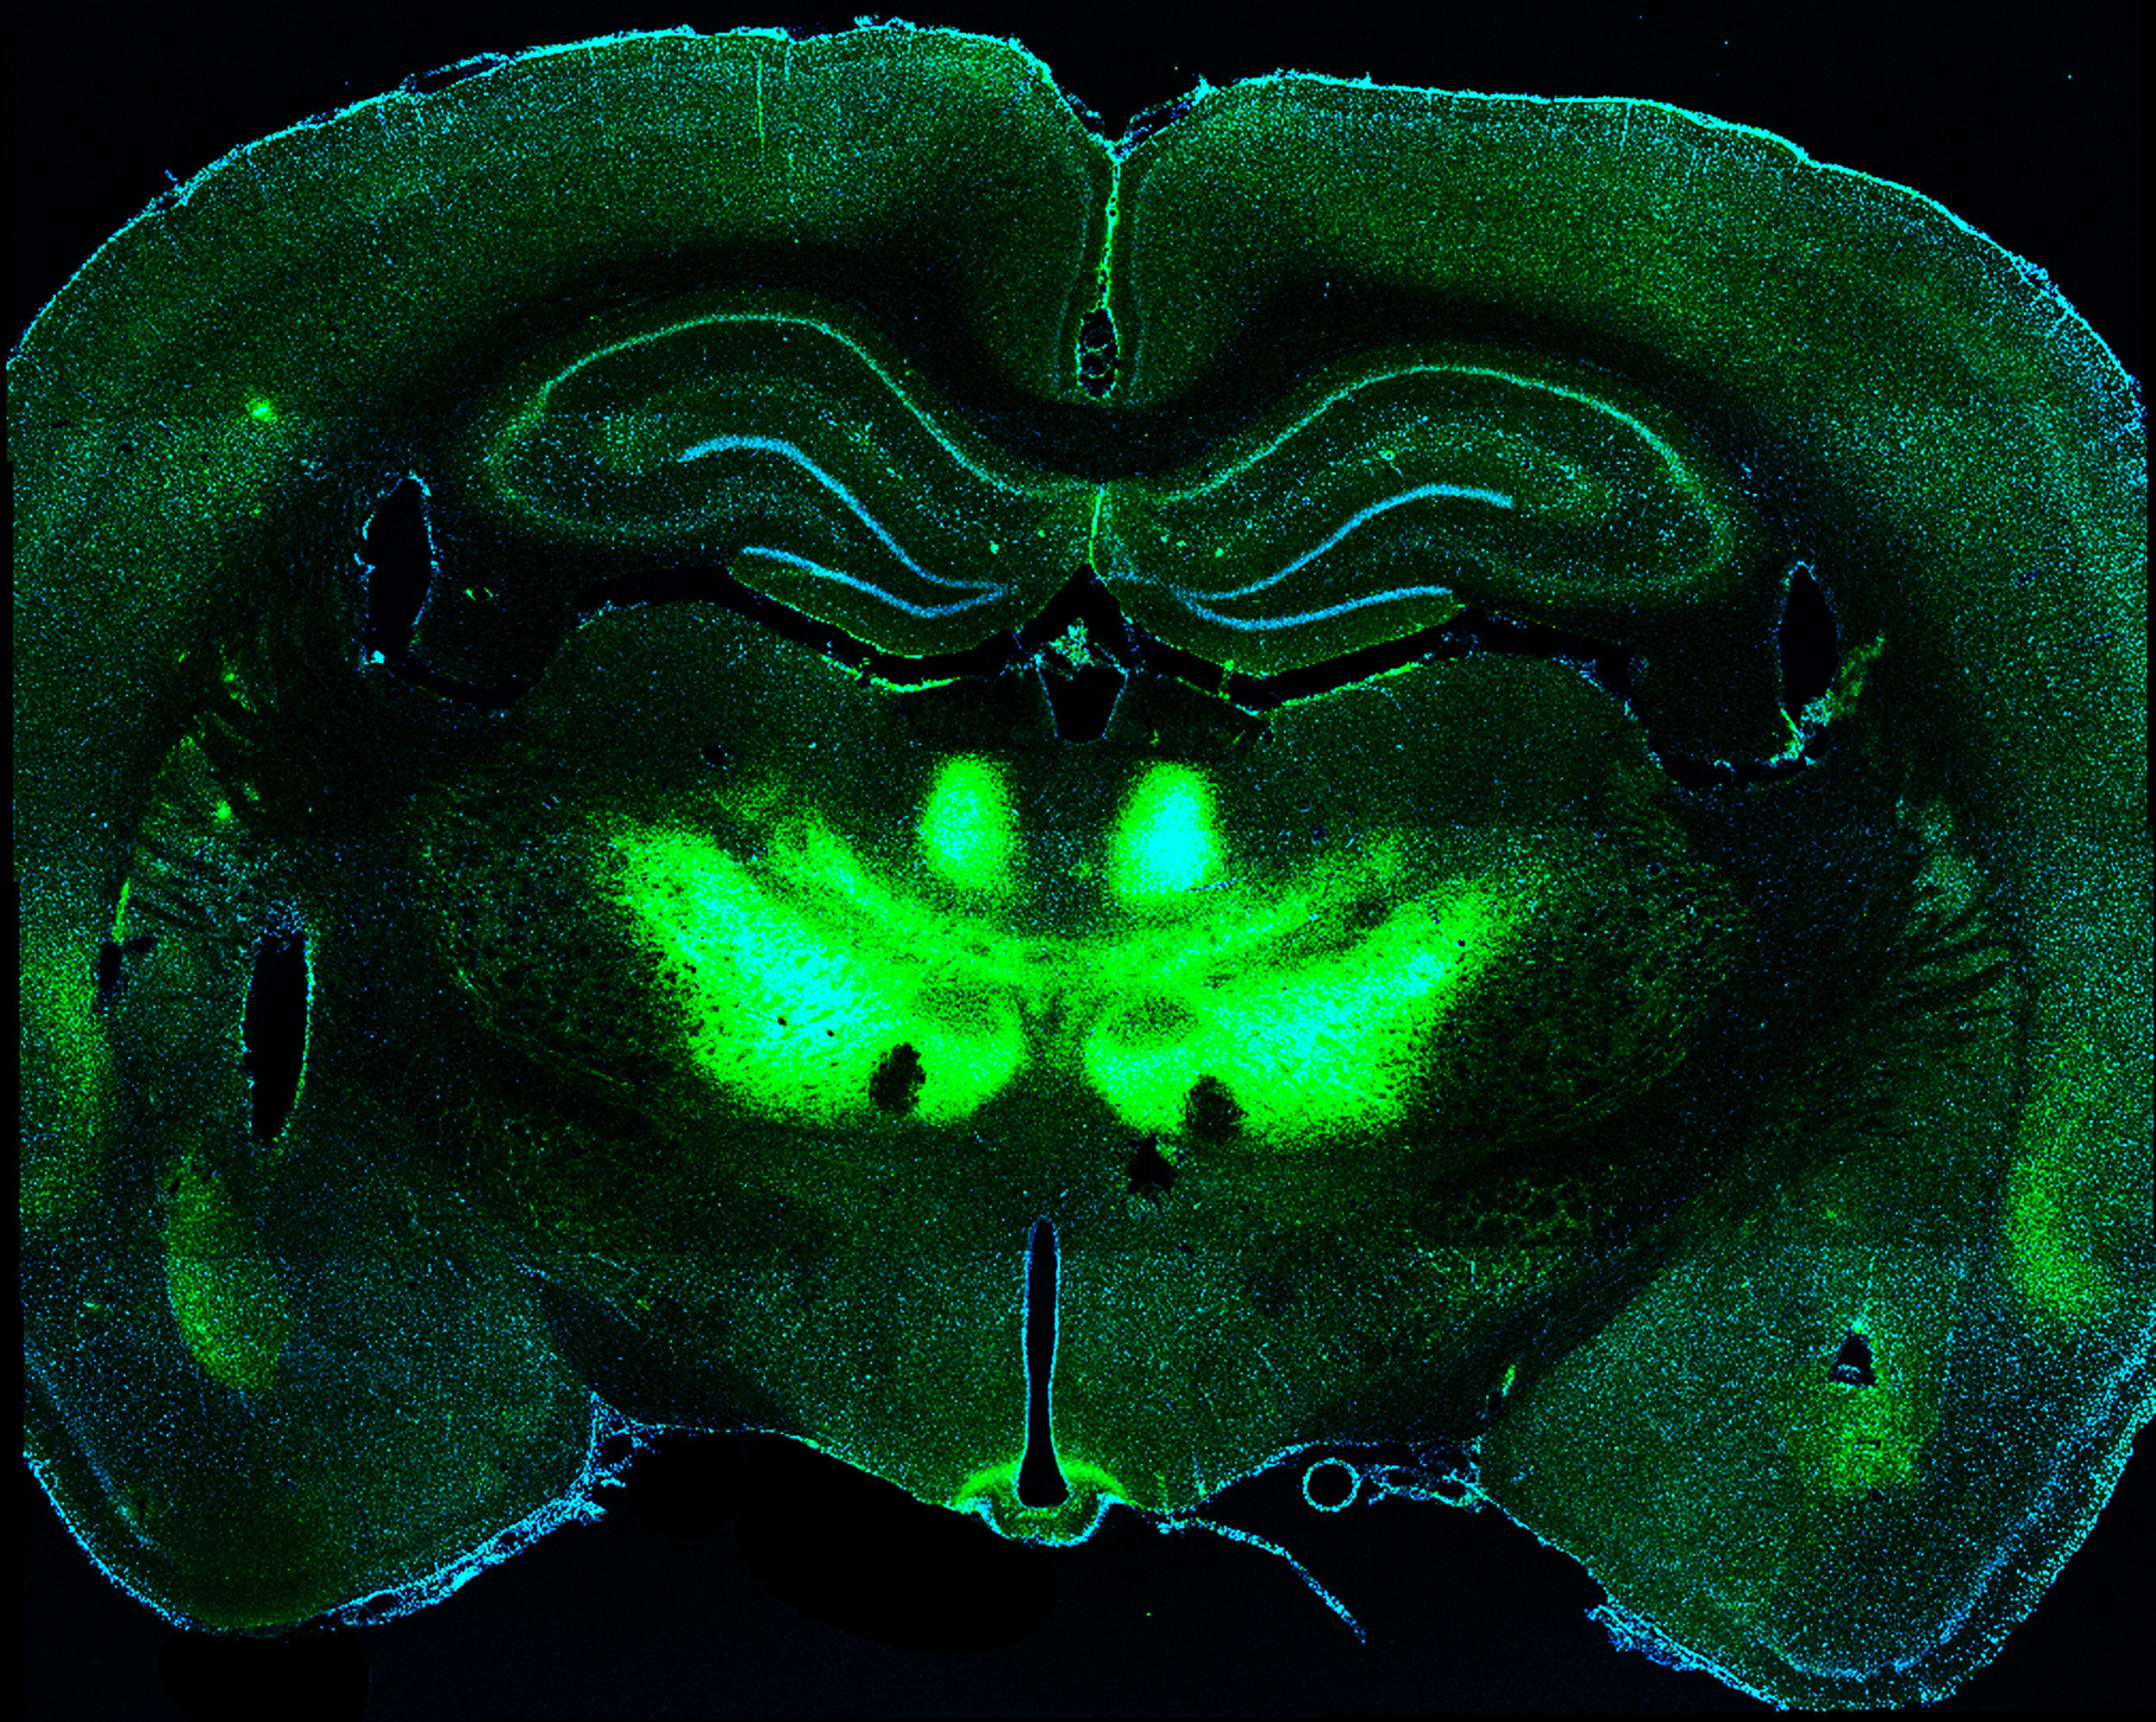 Whole brain coronal section image. Axon terminals from neurons in the orbitofrontal cortex expressing ChR2-eYFP (green) in the thalamus and basolateral amygdala.